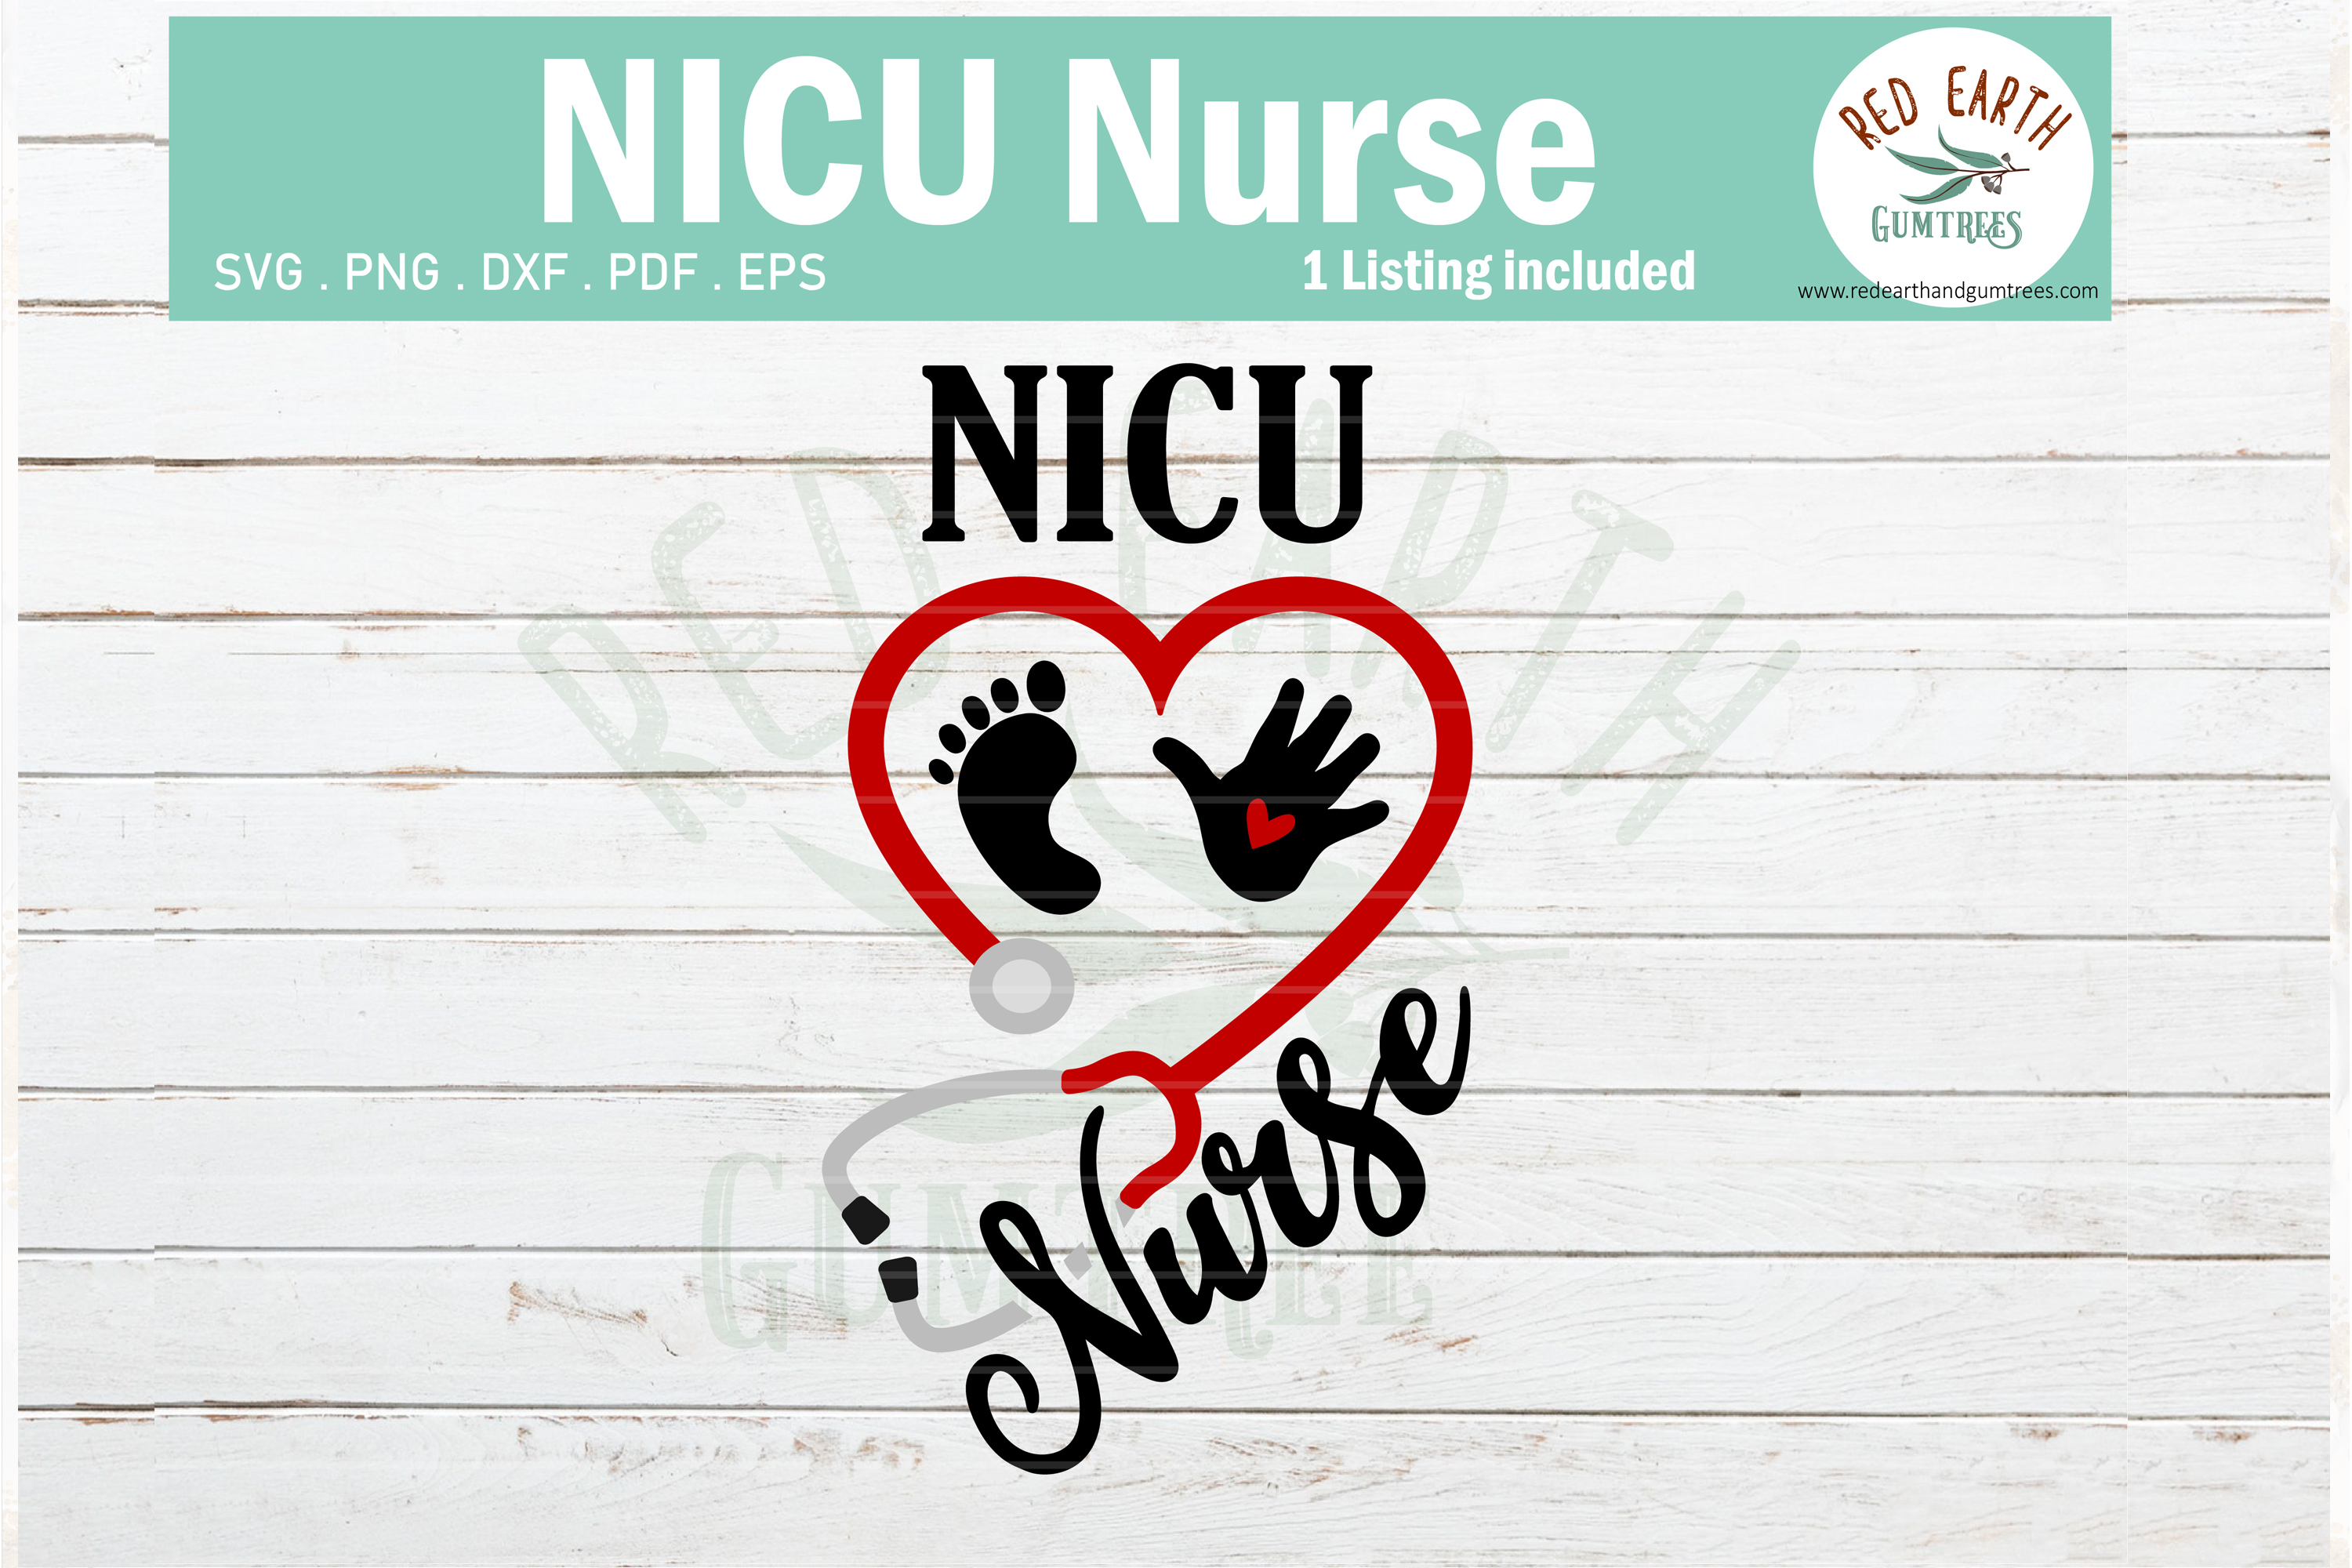 Nicu Nurse Heart Stethoscope Baby Graphic By Redearth And